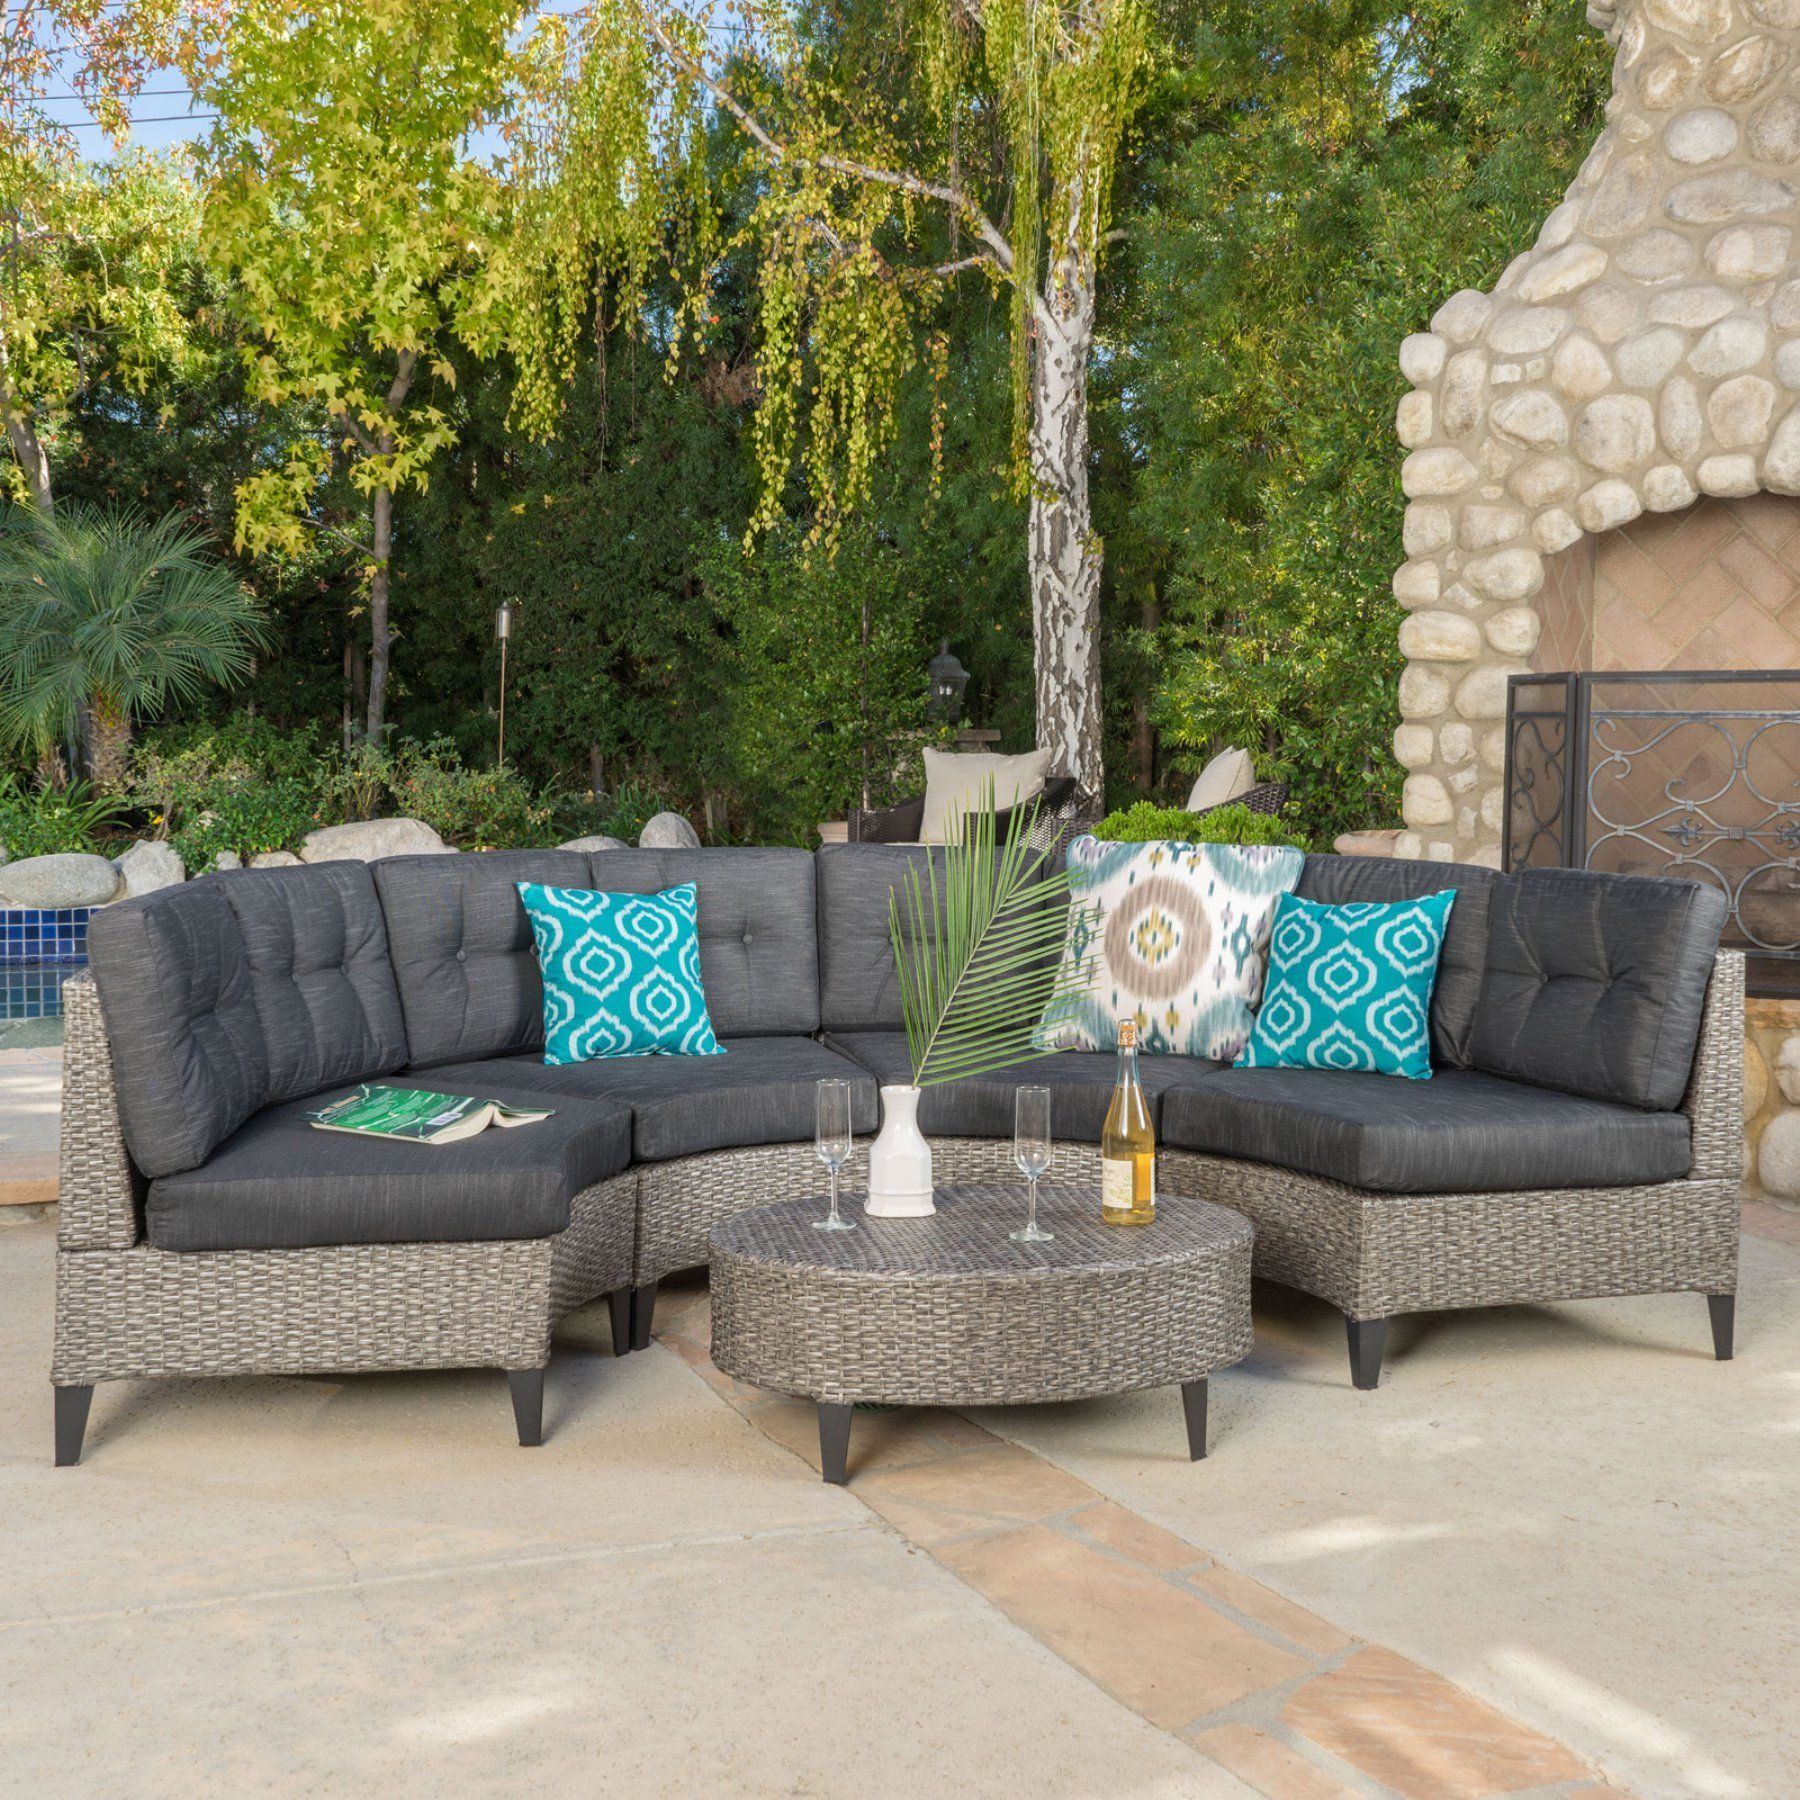 Outdoor Best Selling Home Navarro 5 Piece Patio Wicker Sofa Set